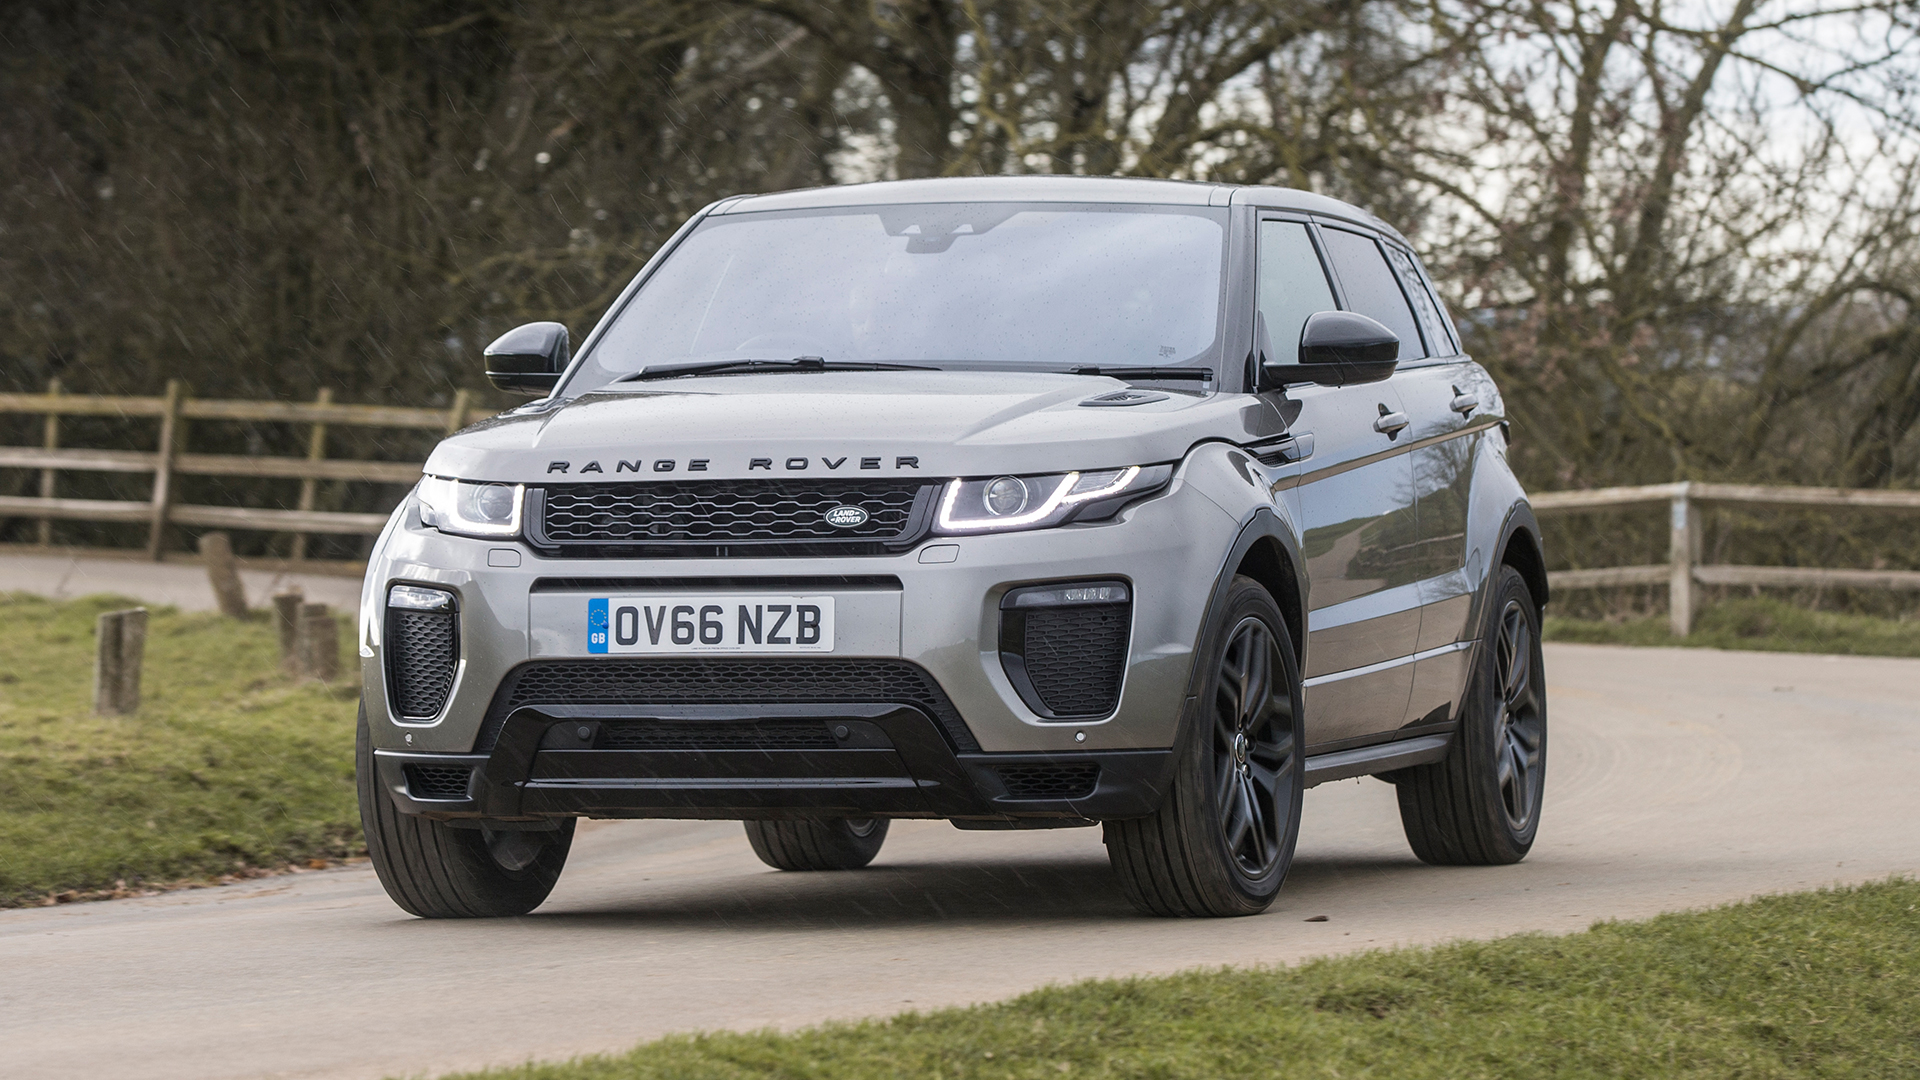 land rover range rover evoque suv 2011 l538 review auto trader uk. Black Bedroom Furniture Sets. Home Design Ideas